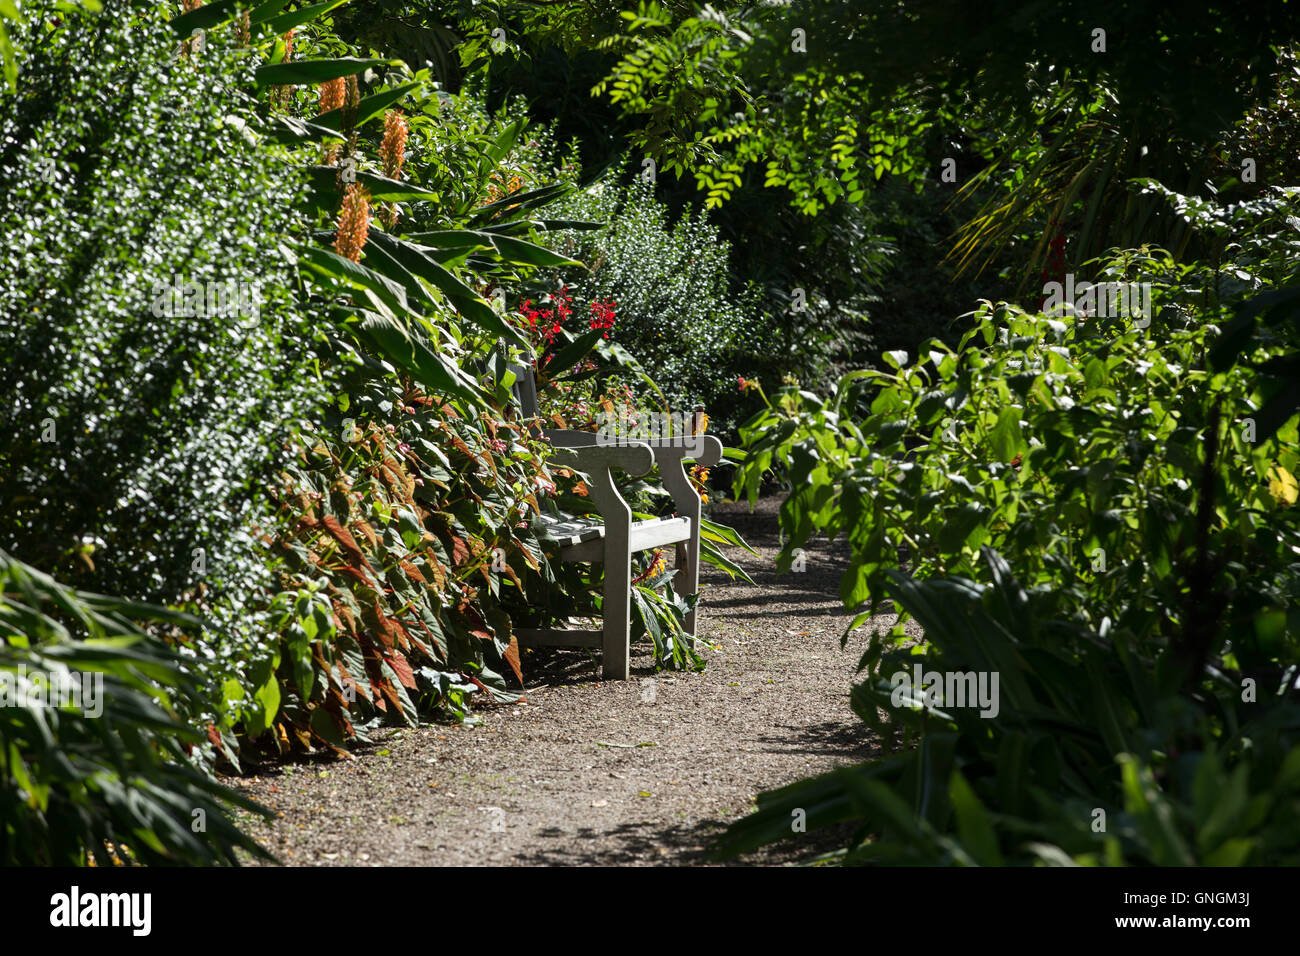 Foliage spills onto a garden path, almost completely hiding a secluded bench at RHS Rosemoor, Devon, UK - Stock Image